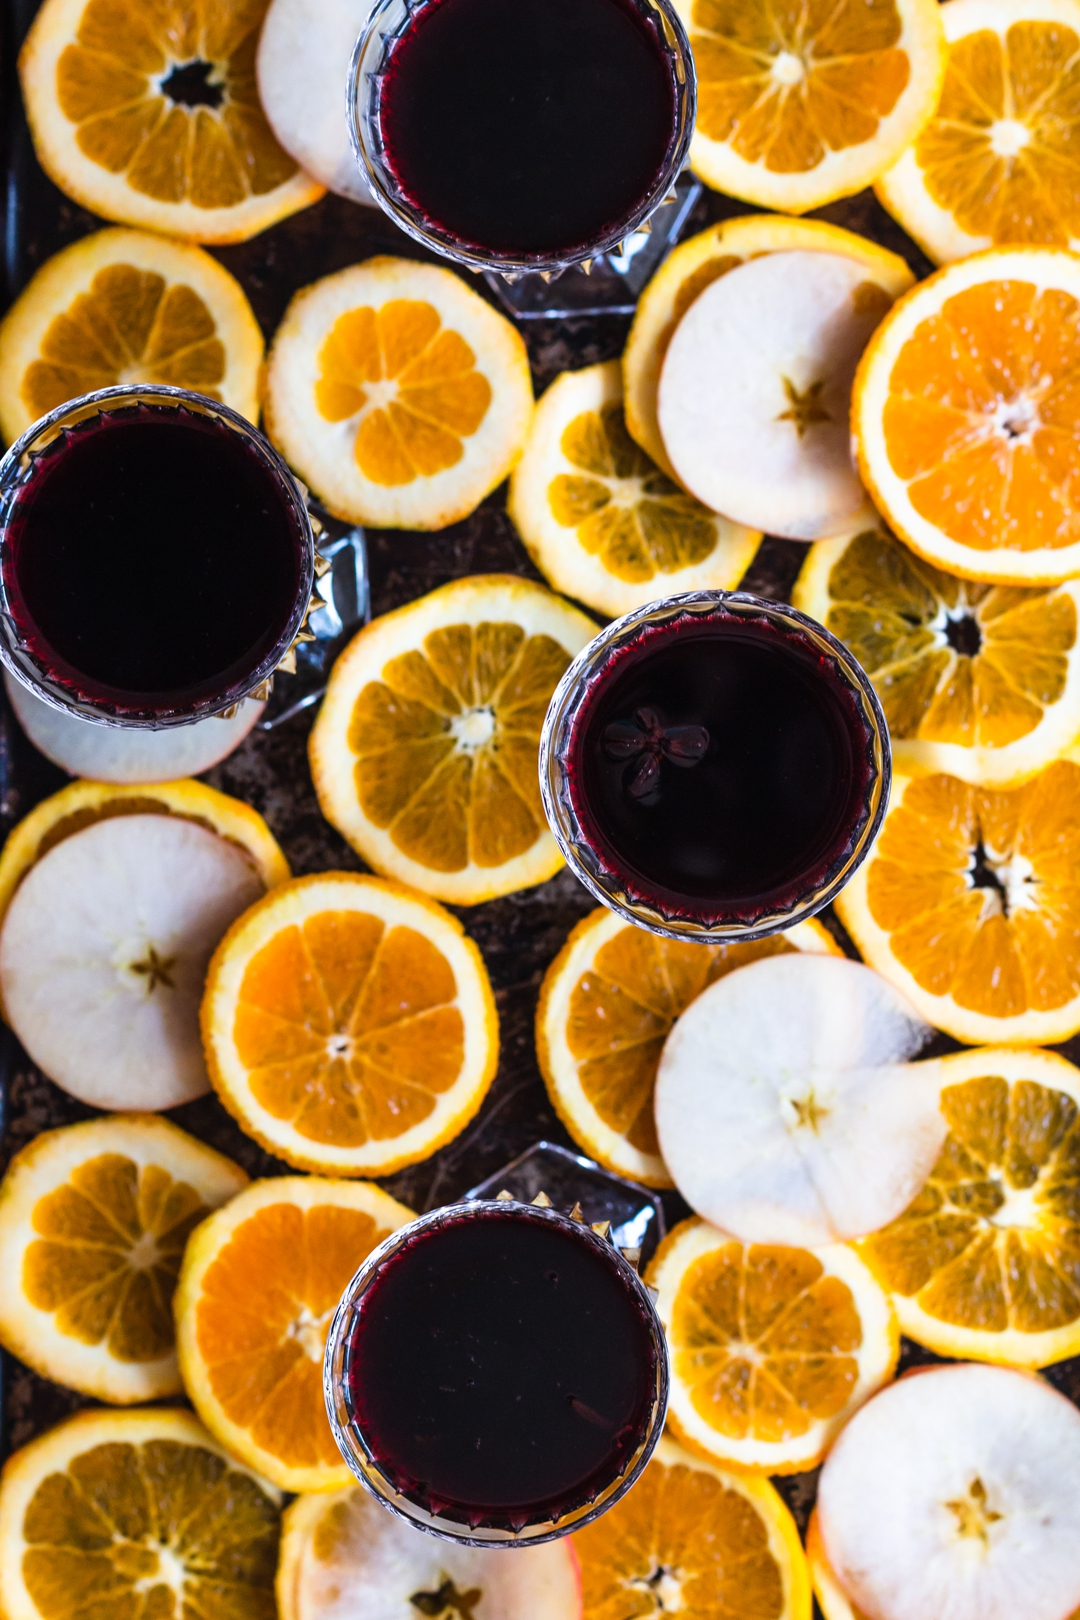 Overhead shot of four glasses filled with mulled wine surrounded by orange and apple slices.